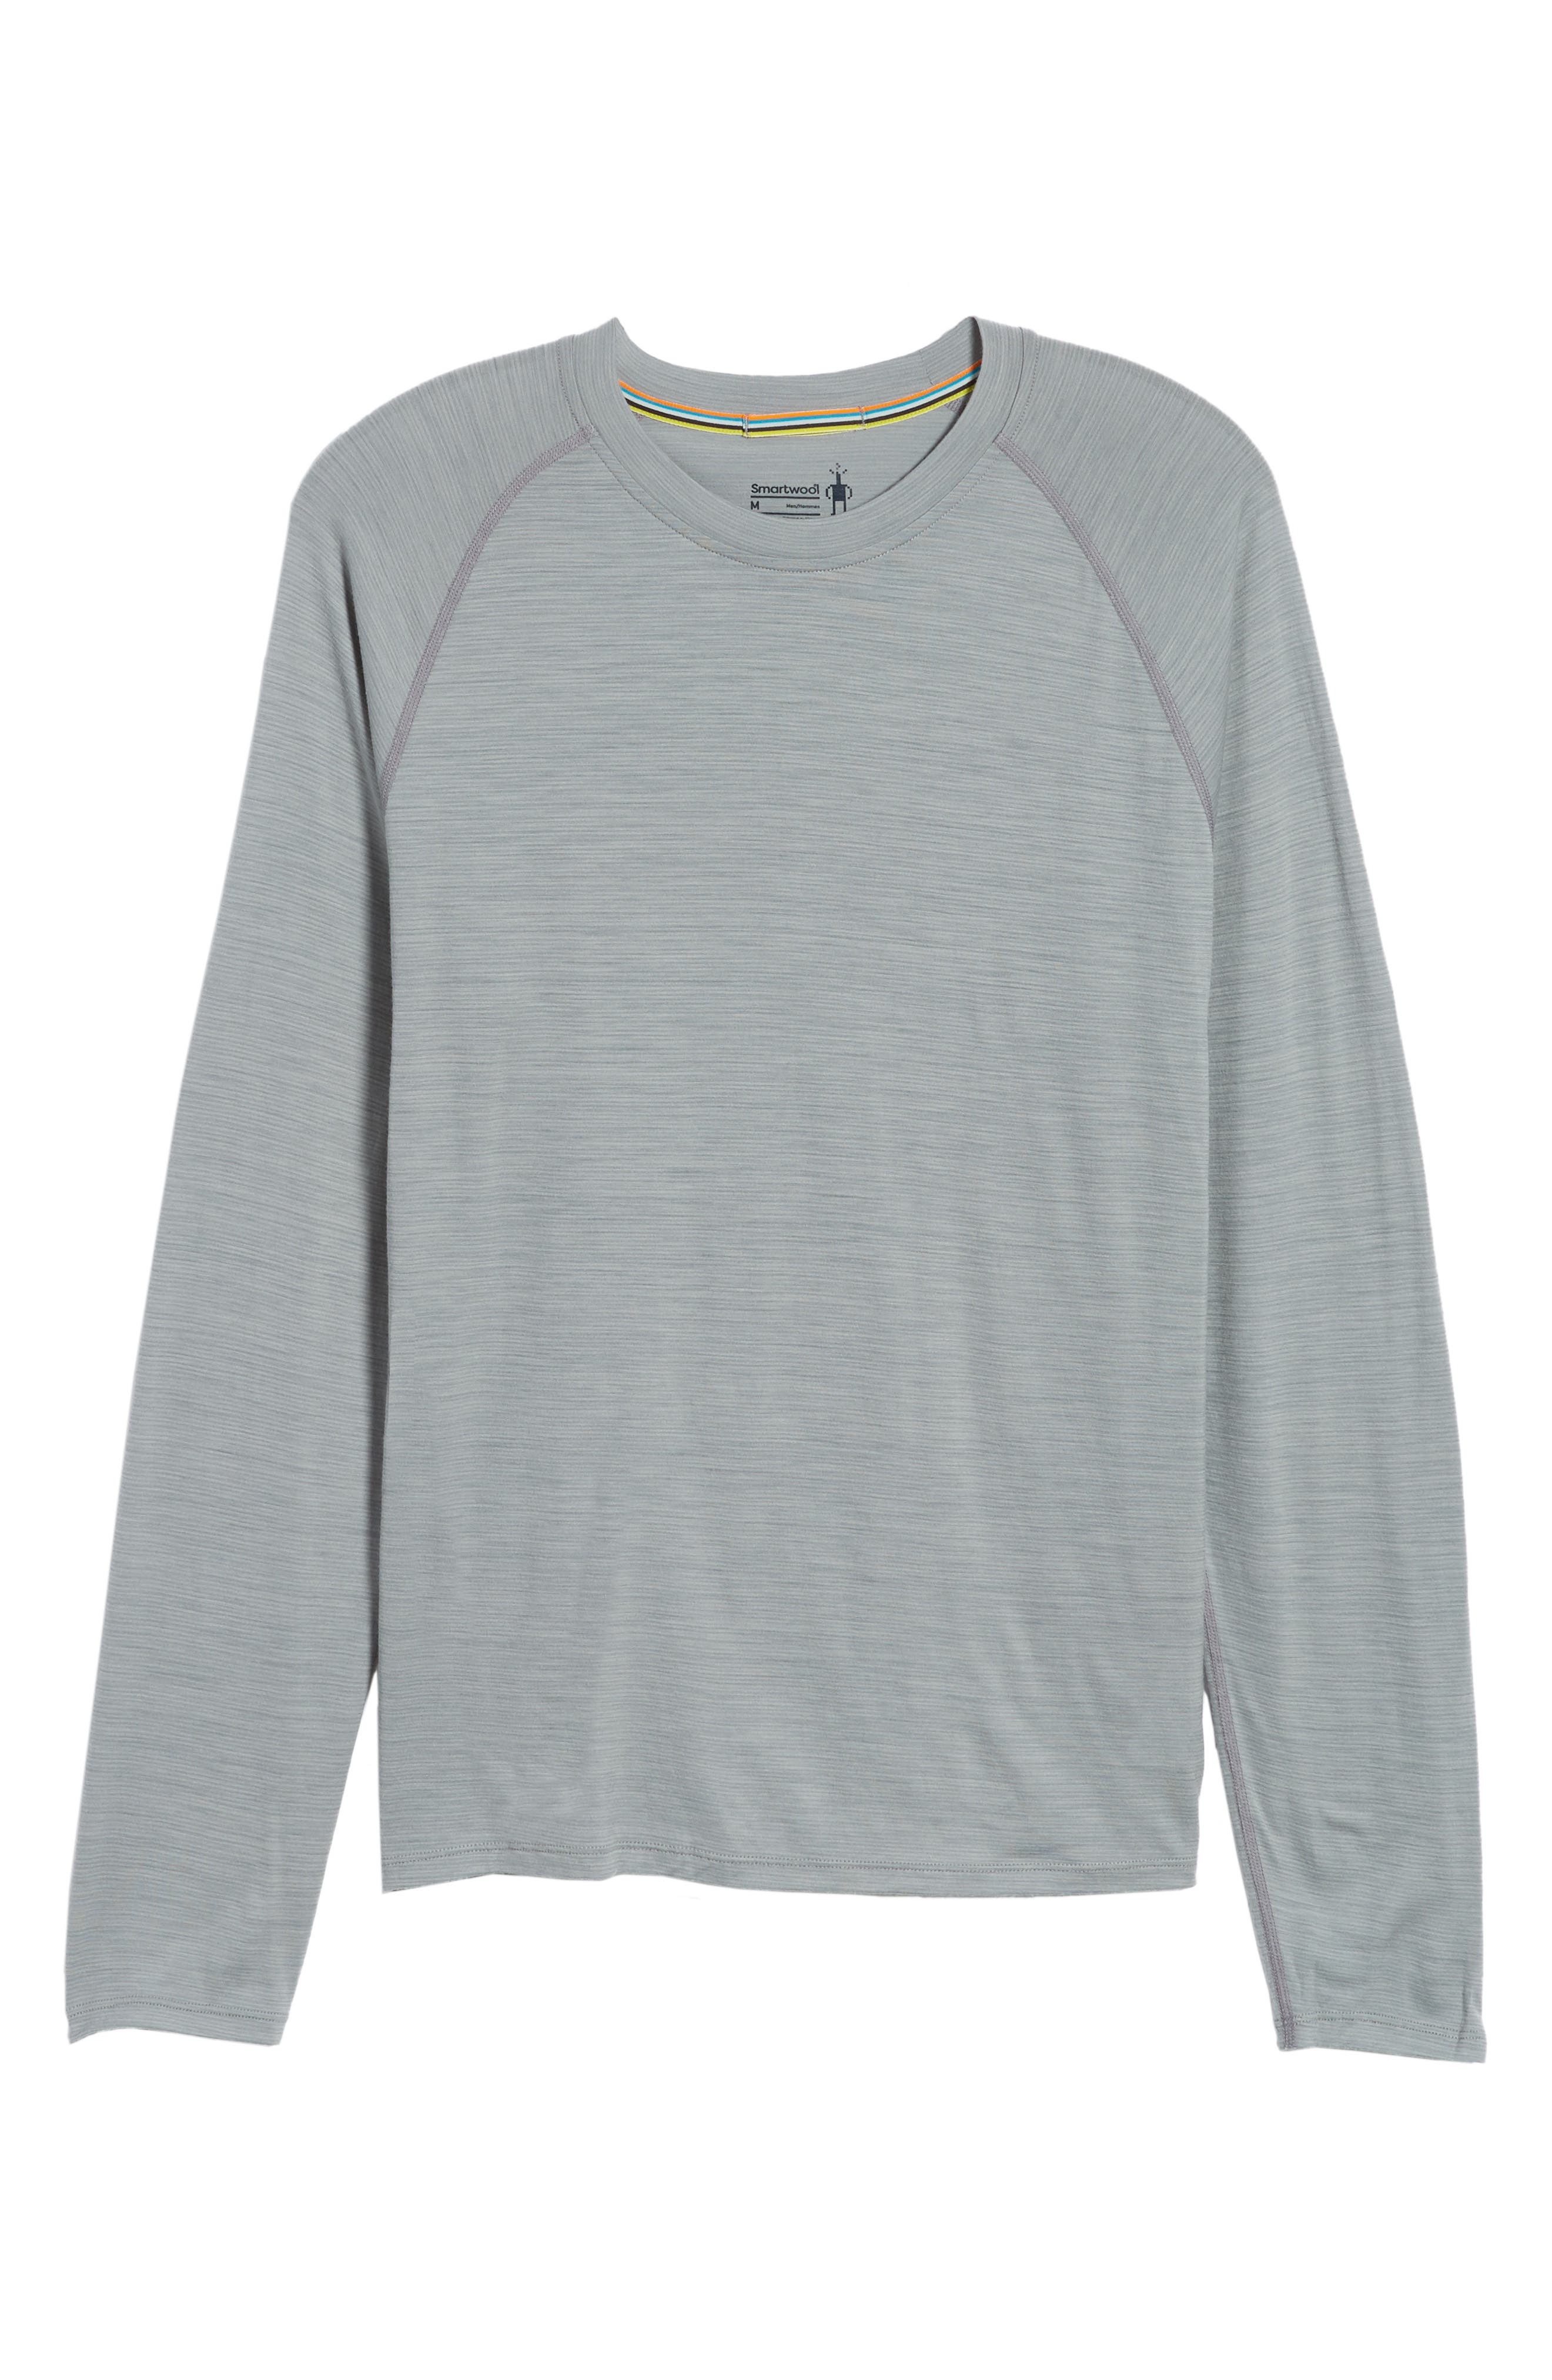 SMARTWOOL,                             Merino 150 Wool Blend Long Sleeve T-Shirt,                             Alternate thumbnail 6, color,                             LIGHT GREY